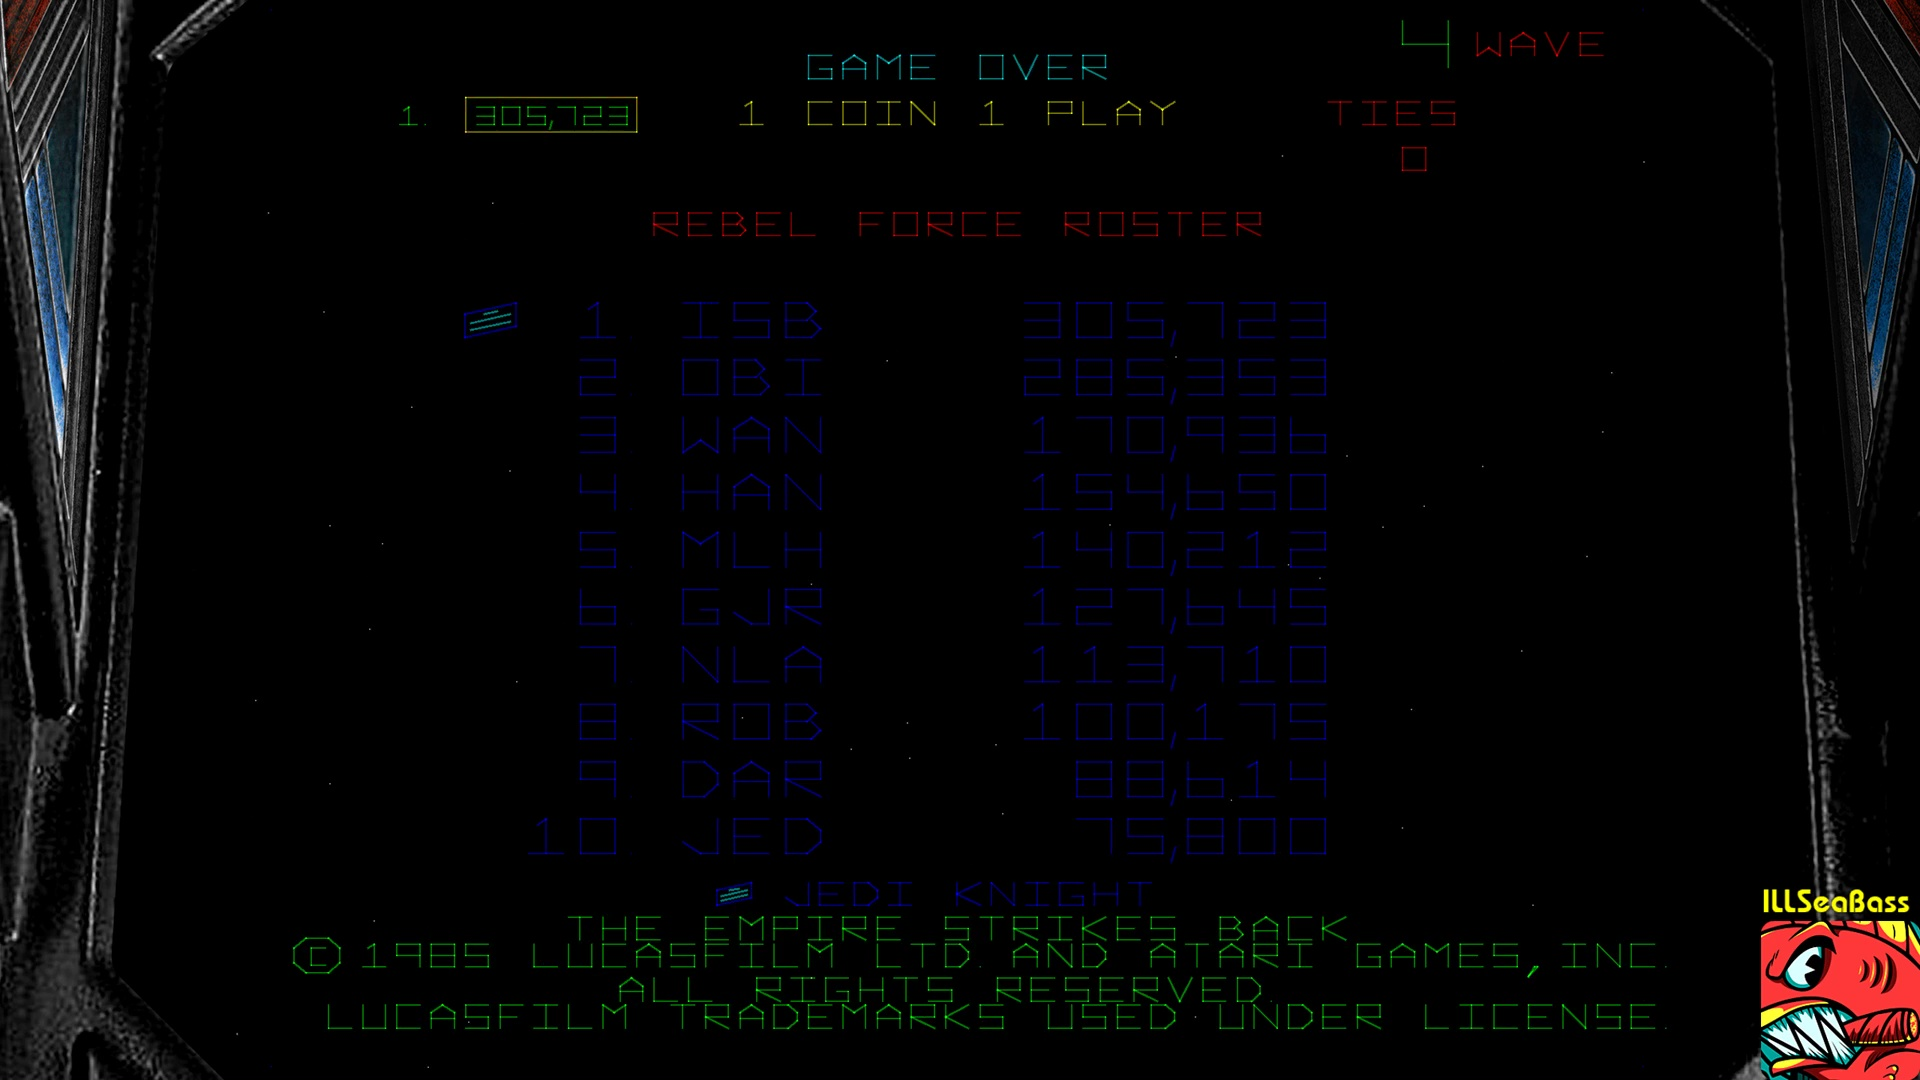 ILLSeaBass: Star Wars: The Empire Strikes Back (Arcade Emulated / M.A.M.E.) 305,723 points on 2017-11-06 23:44:42